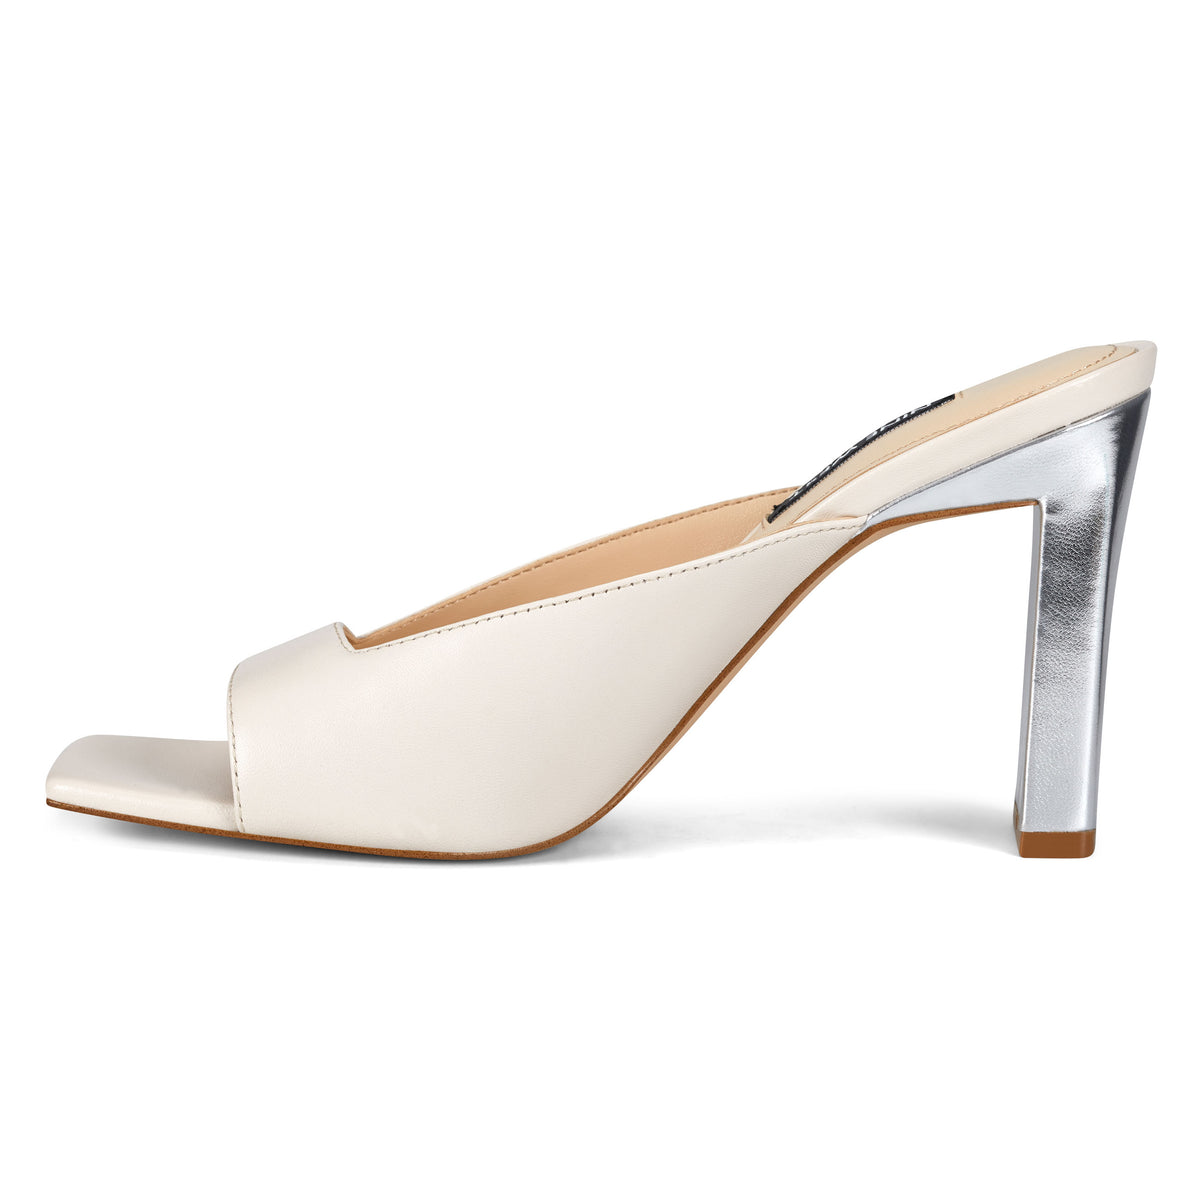 pyper-heeled-slide-sandals-in-ivory-leather